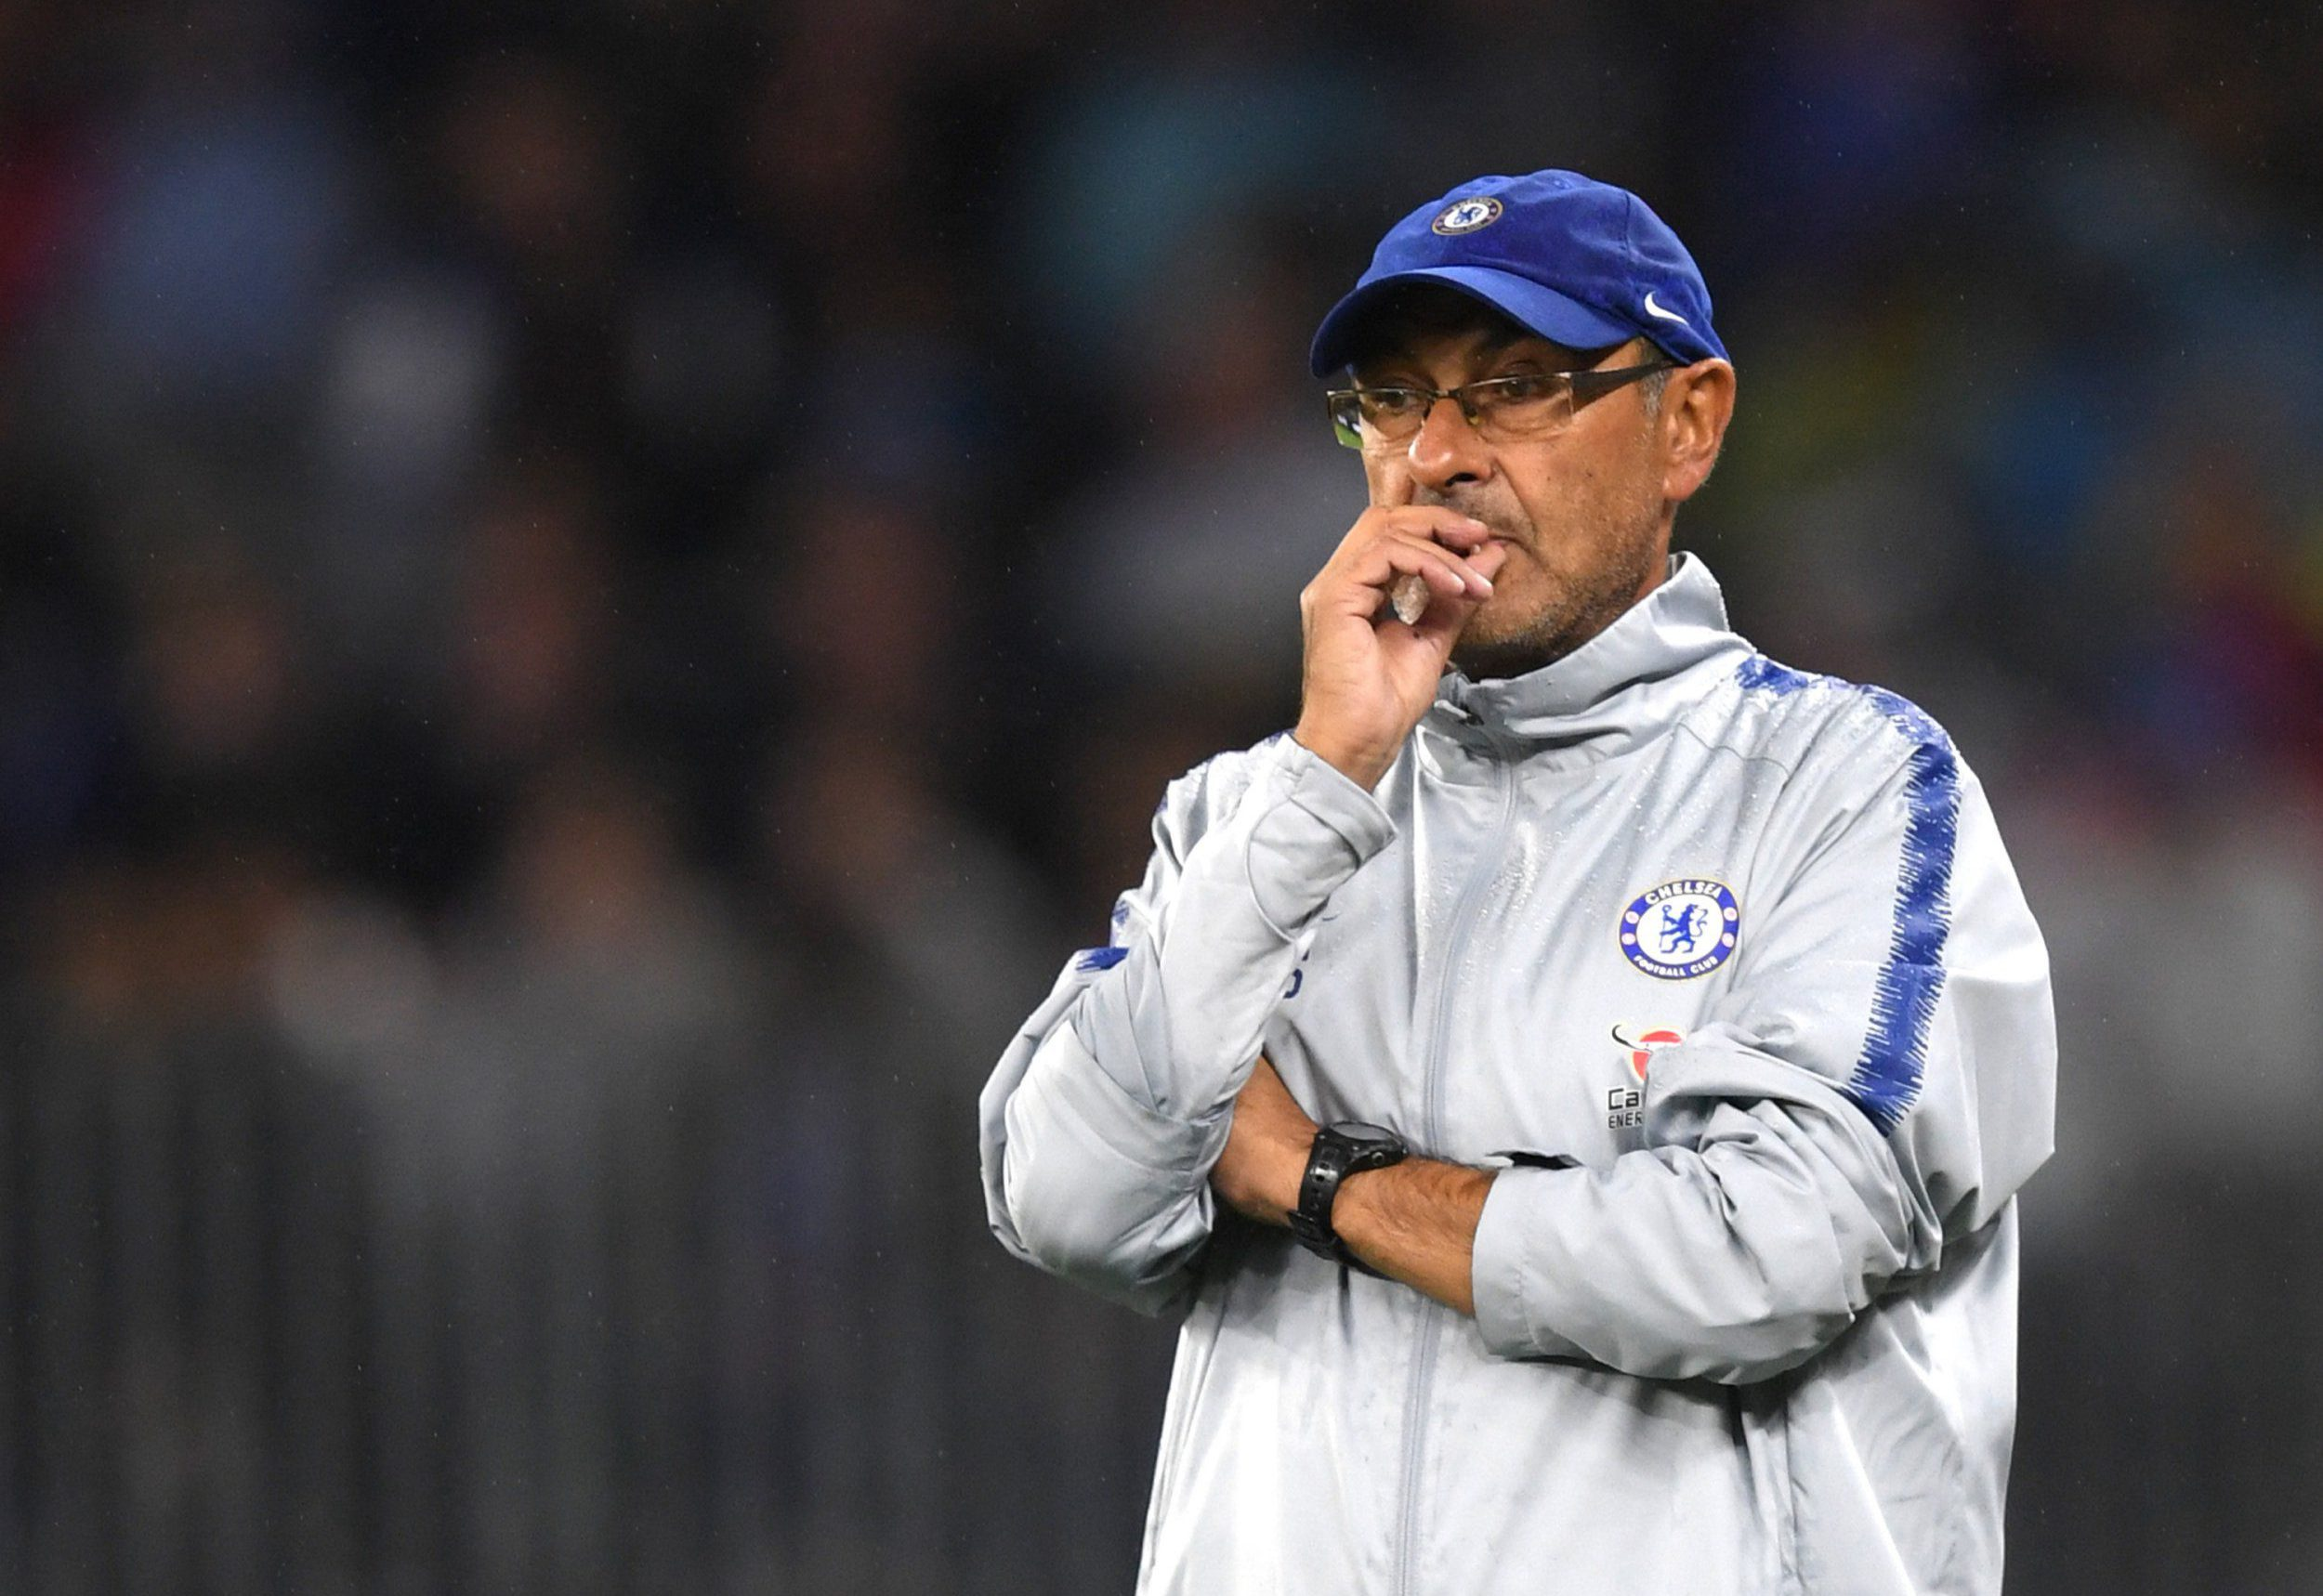 PERTH, AUSTRALIA - JULY 23: Maurizio Sarri, Manager of Chelsea looks on during the international friendly between Chelsea FC and Perth Glory at Optus Stadium on July 23, 2018 in Perth, Australia. (Photo by Darren Walsh/Chelsea FC via Getty Images)